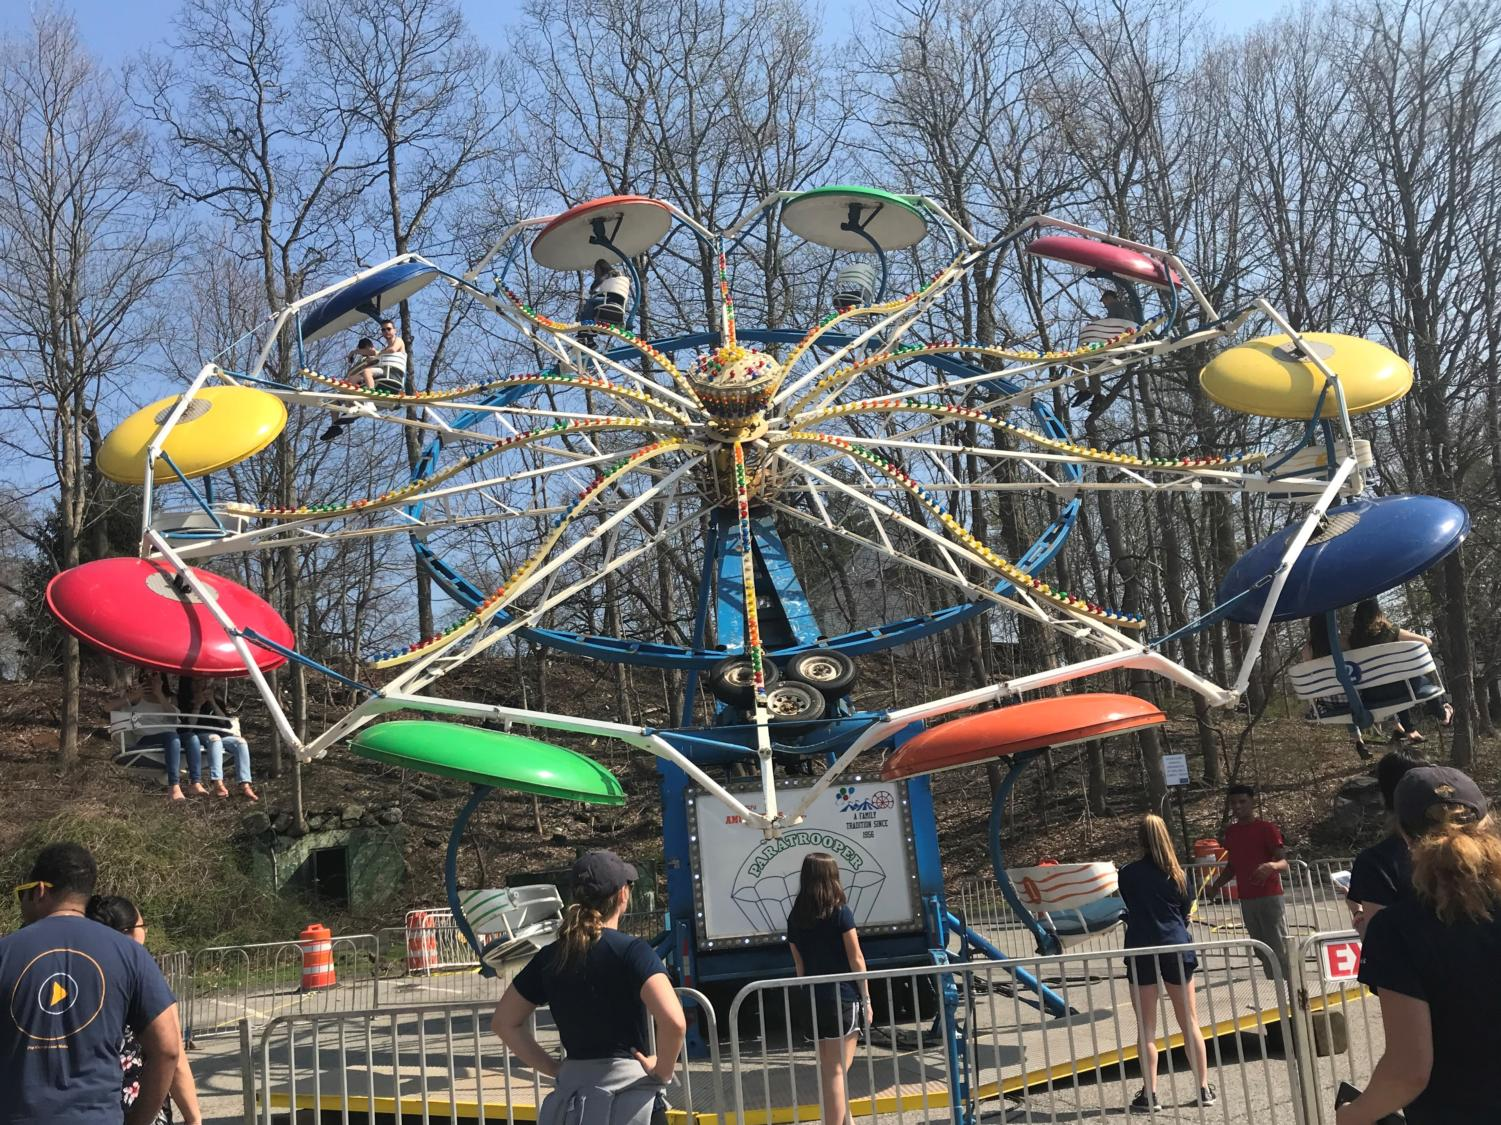 The Ferris Wheel; one of many rides that students enjoyed on Saturday afternoon during Programming Board's Spring Carnival